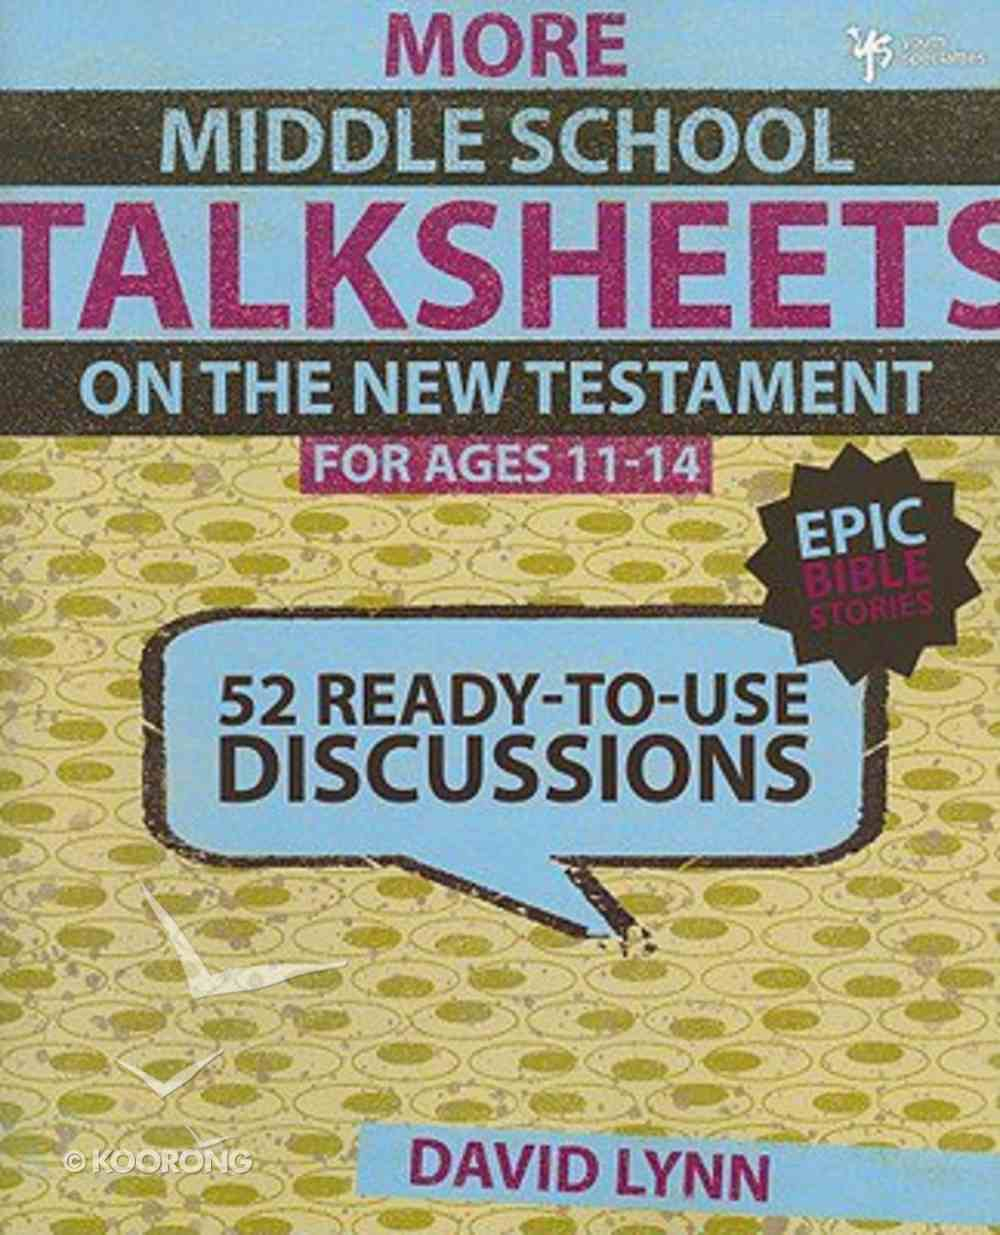 Still More Middle School New Testament (Ages 11-14) (Talksheets Series) Paperback